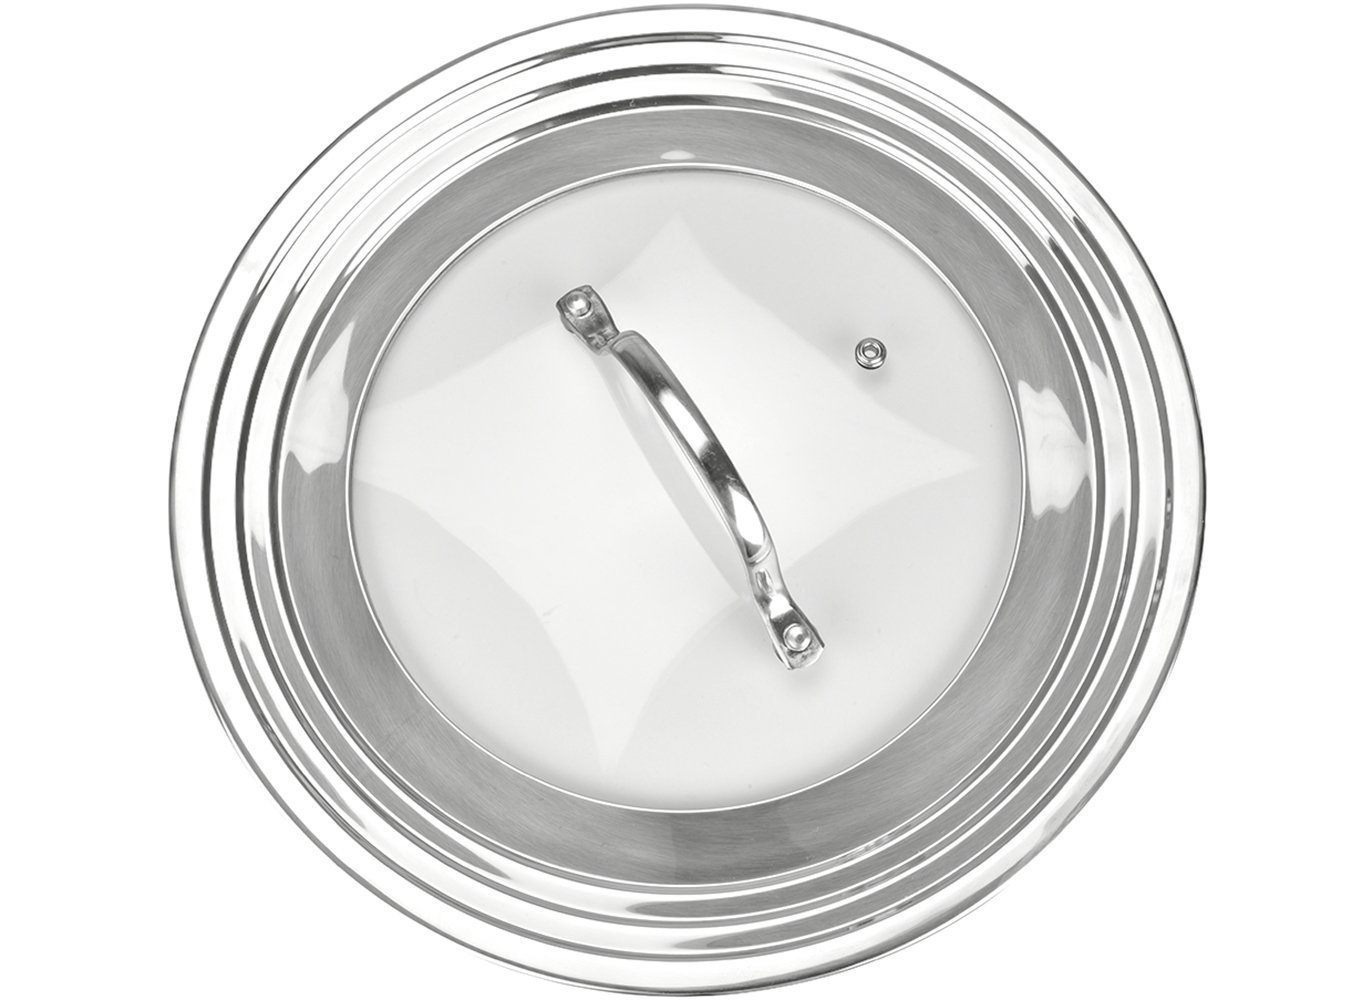 "Universal Lid Stainless Steel 18/8 and Tempered Glass, Fits All 7"" to 12"" Pots and Pans, Replacement Frying Pan Cover and Cookware Lids"